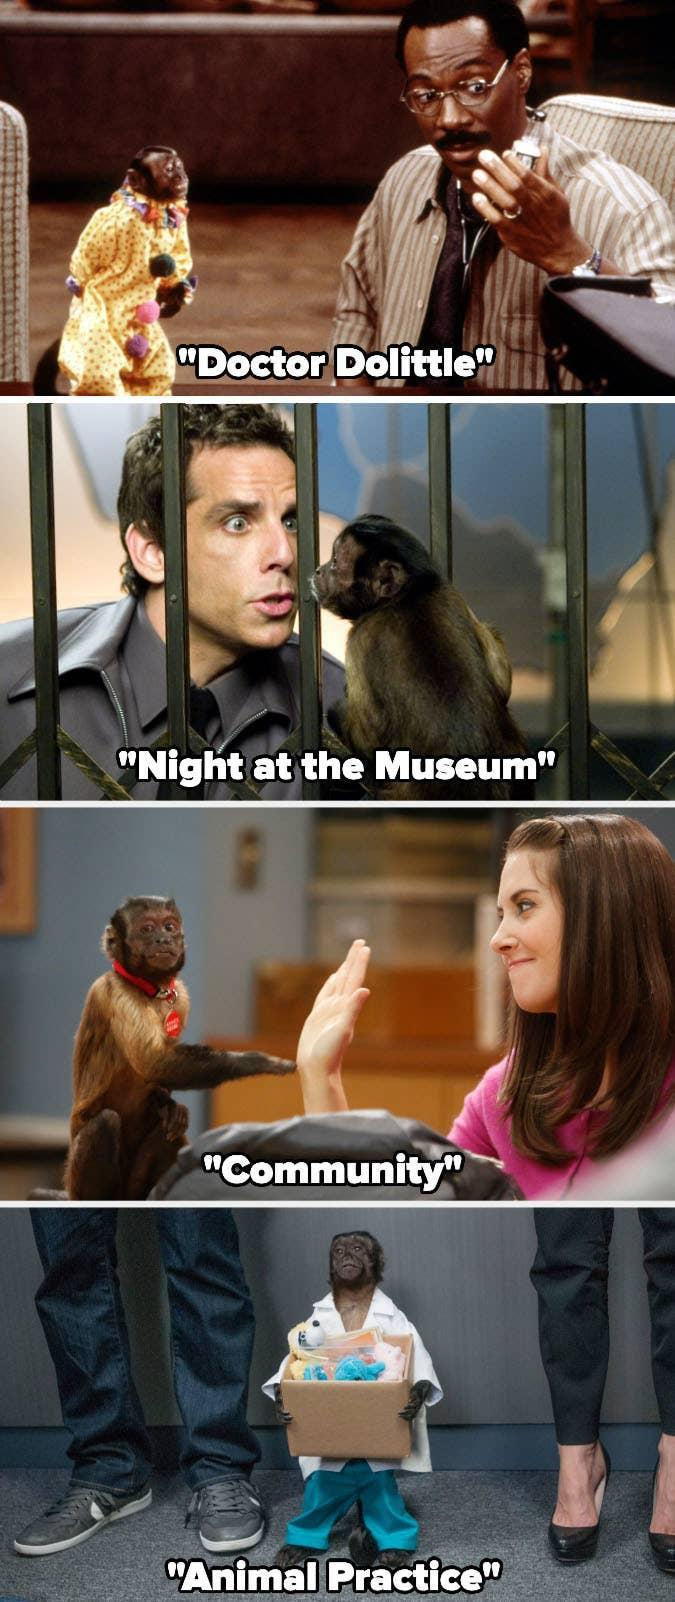 """Crystal the Monkey in """"Doctor Dolittle,"""" """"Night at the Museum,"""" """"Community,"""" and """"Animal Practice"""""""